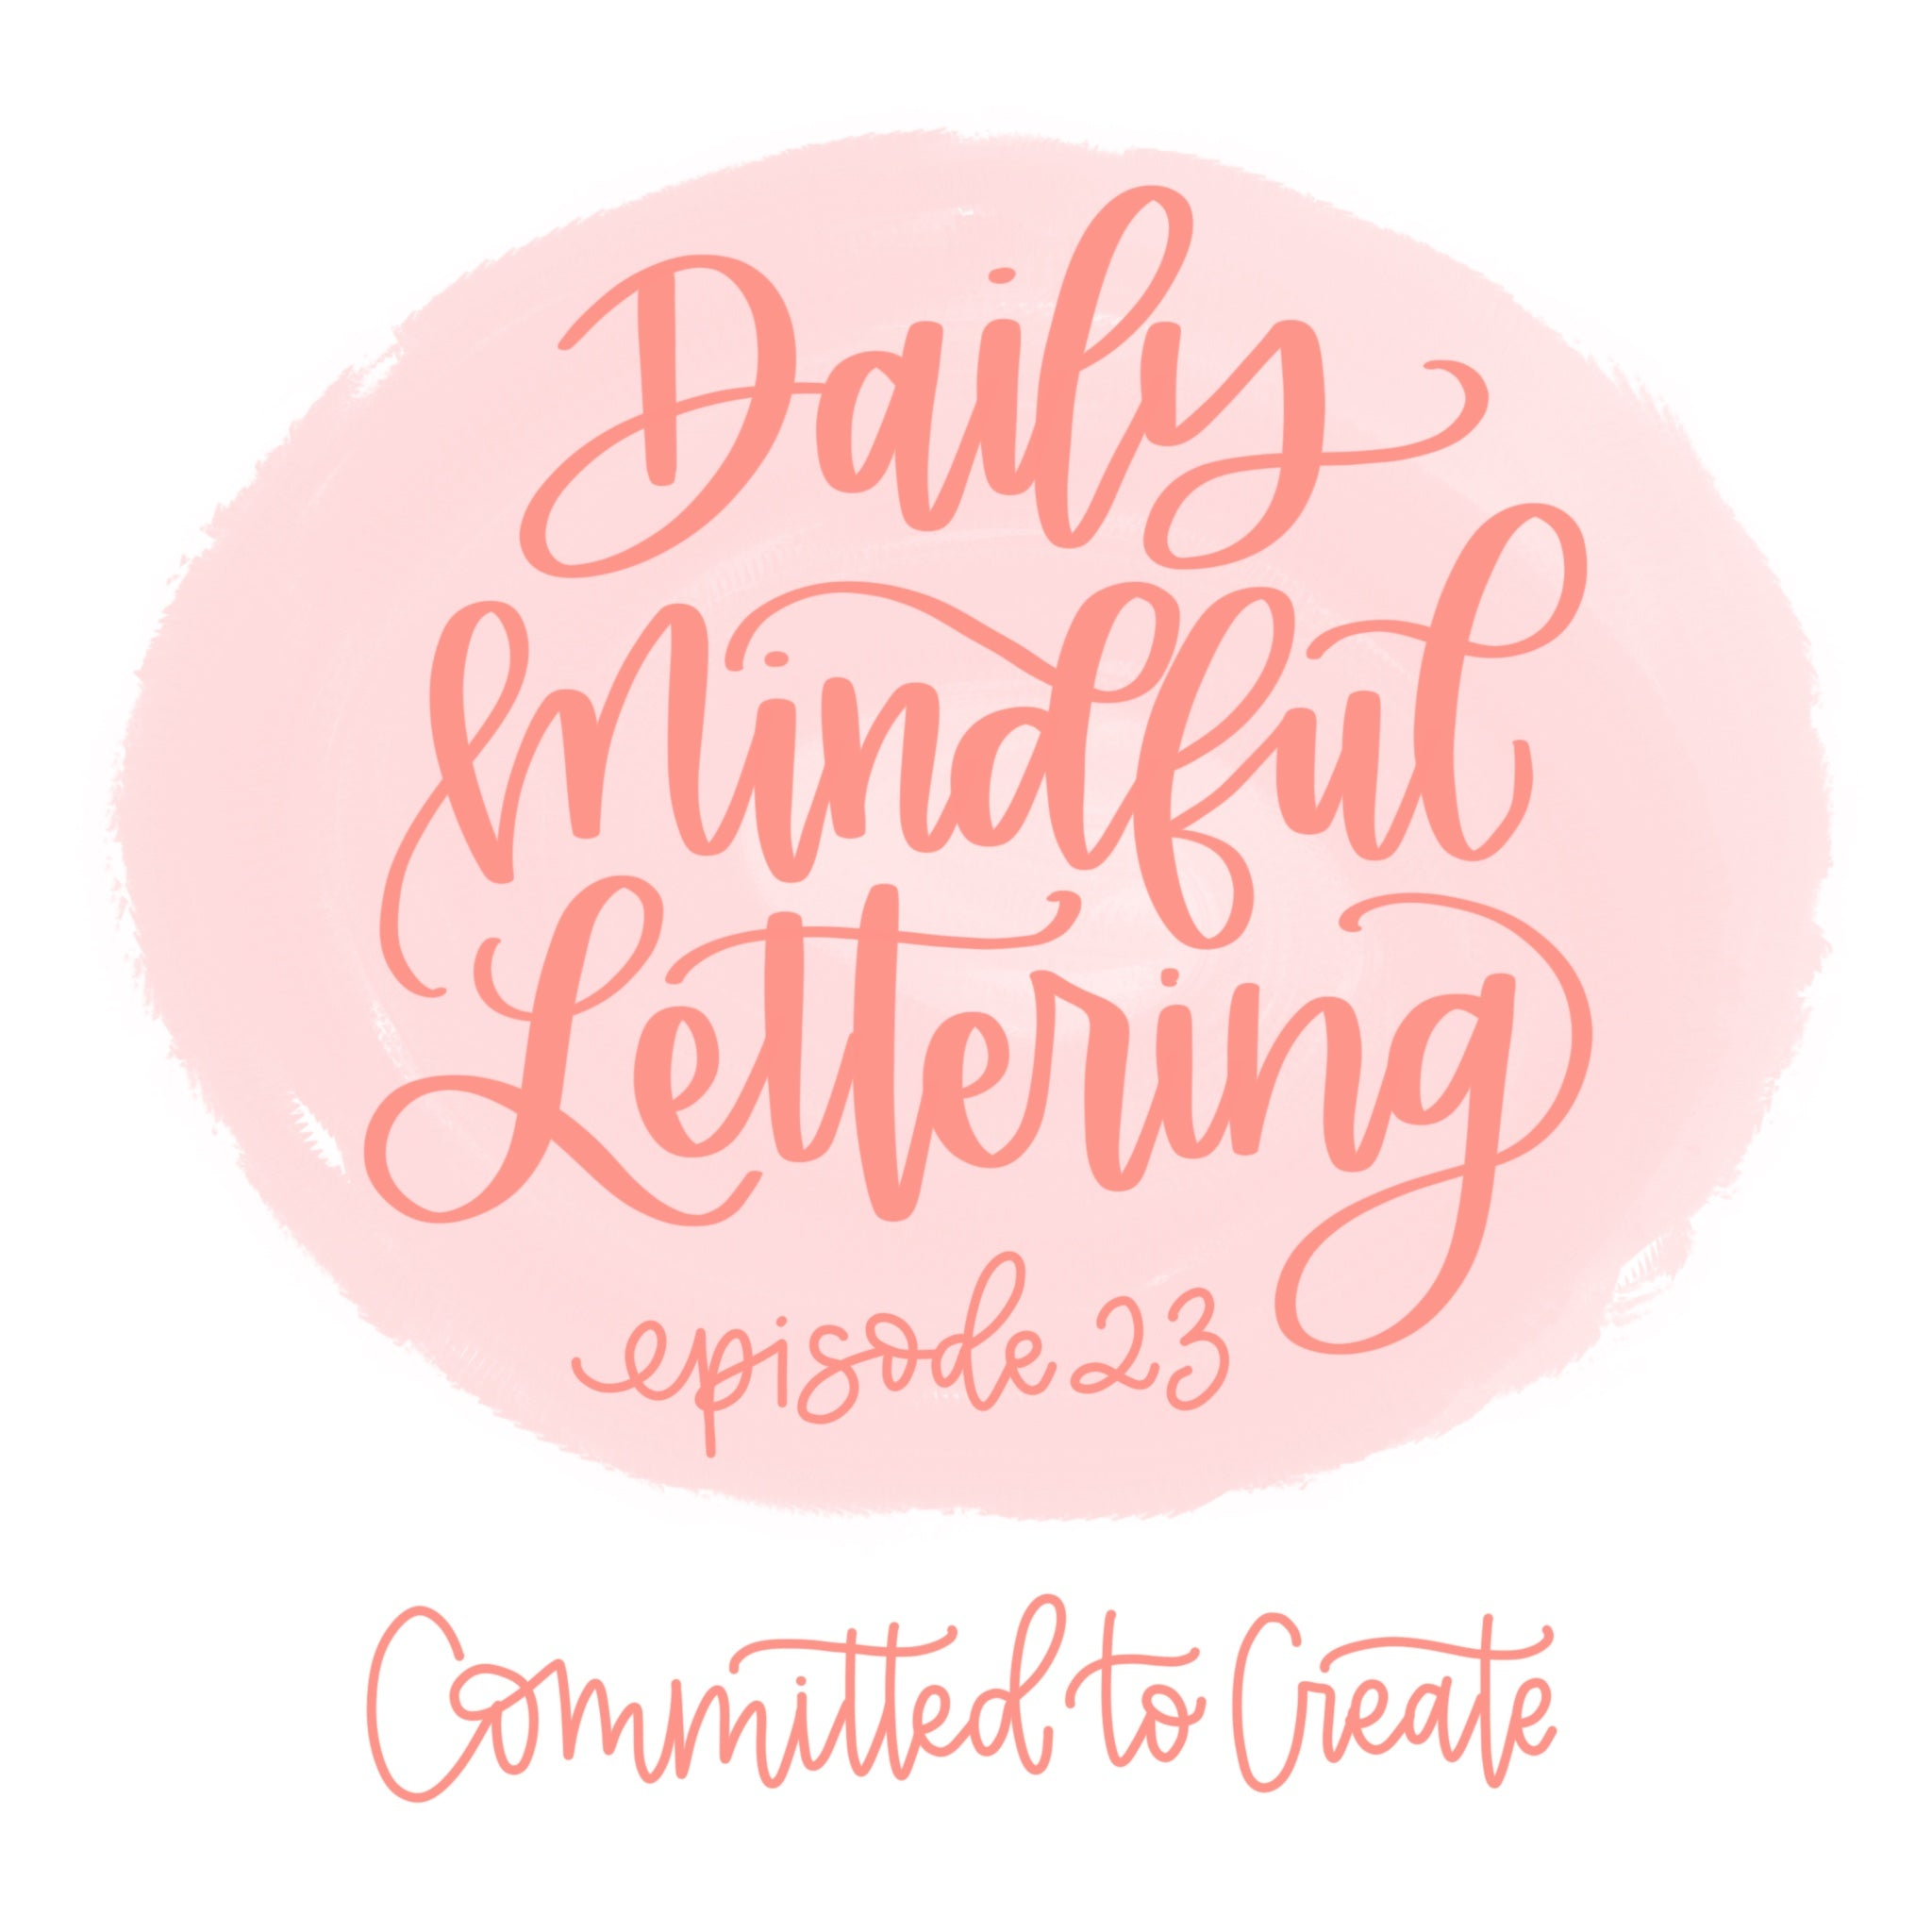 023: Daily Mindful Lettering